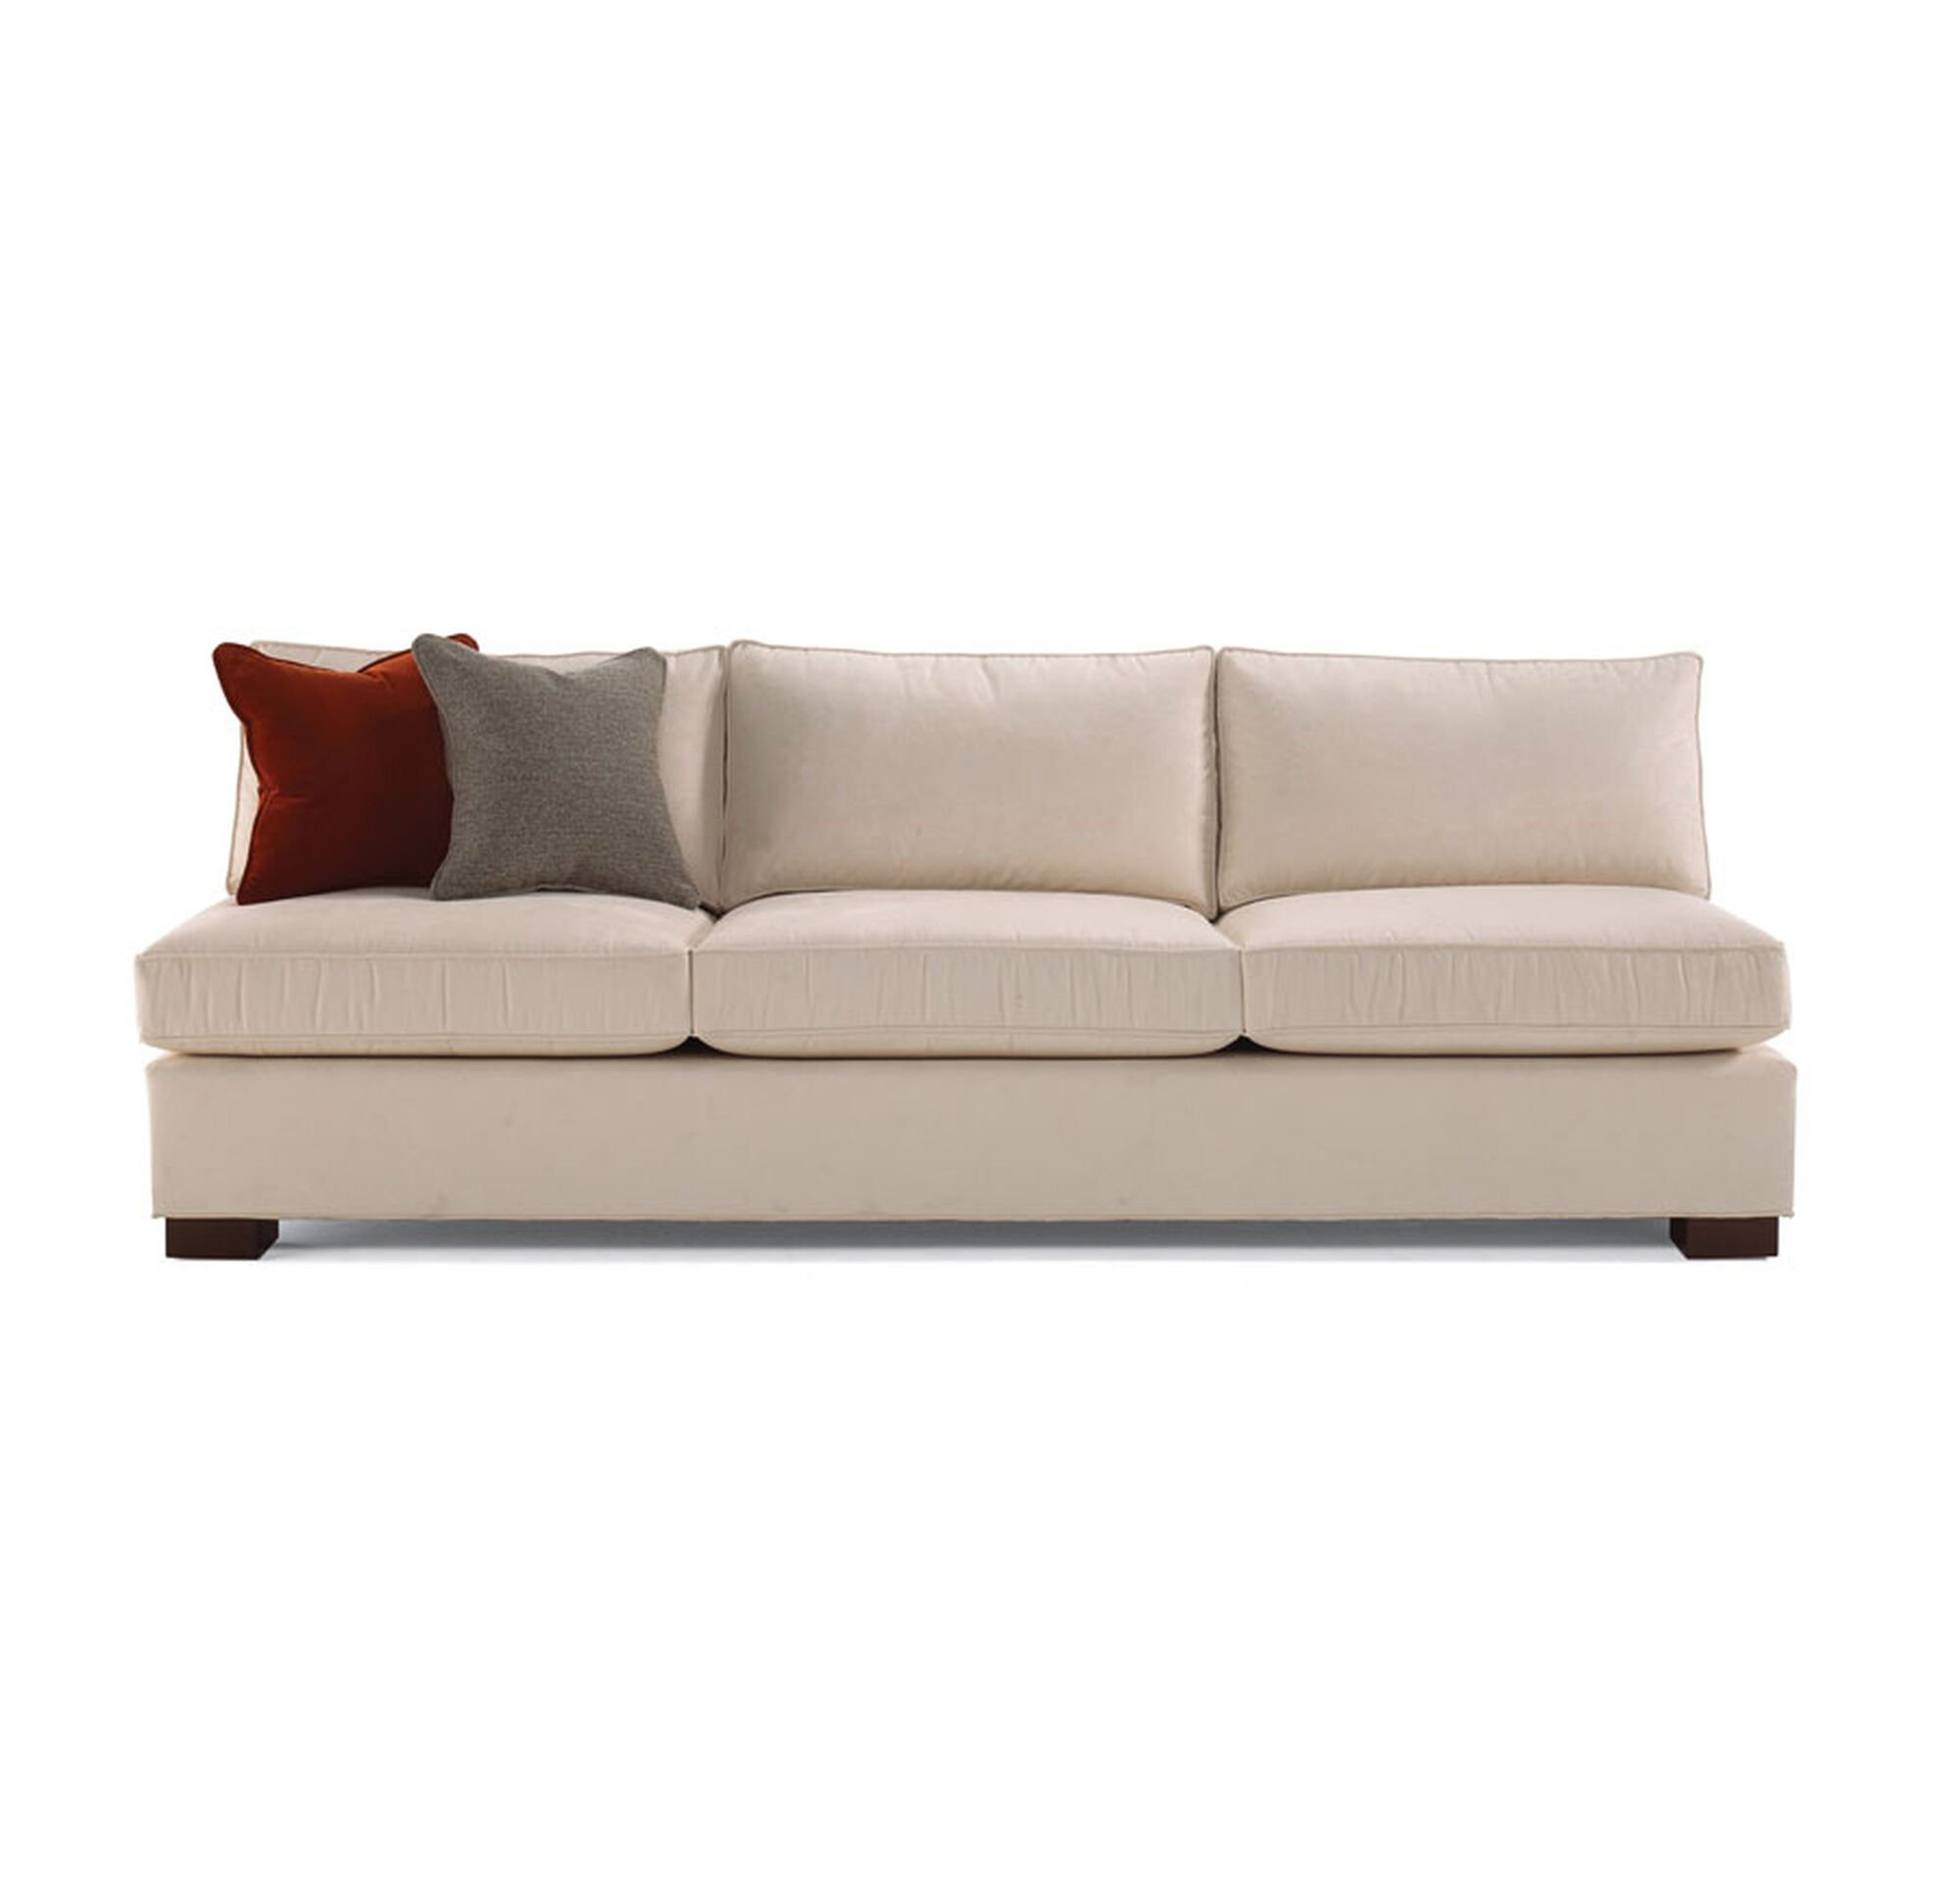 at sofa p armless furniture fabric lagoon couch living lc al armen trace